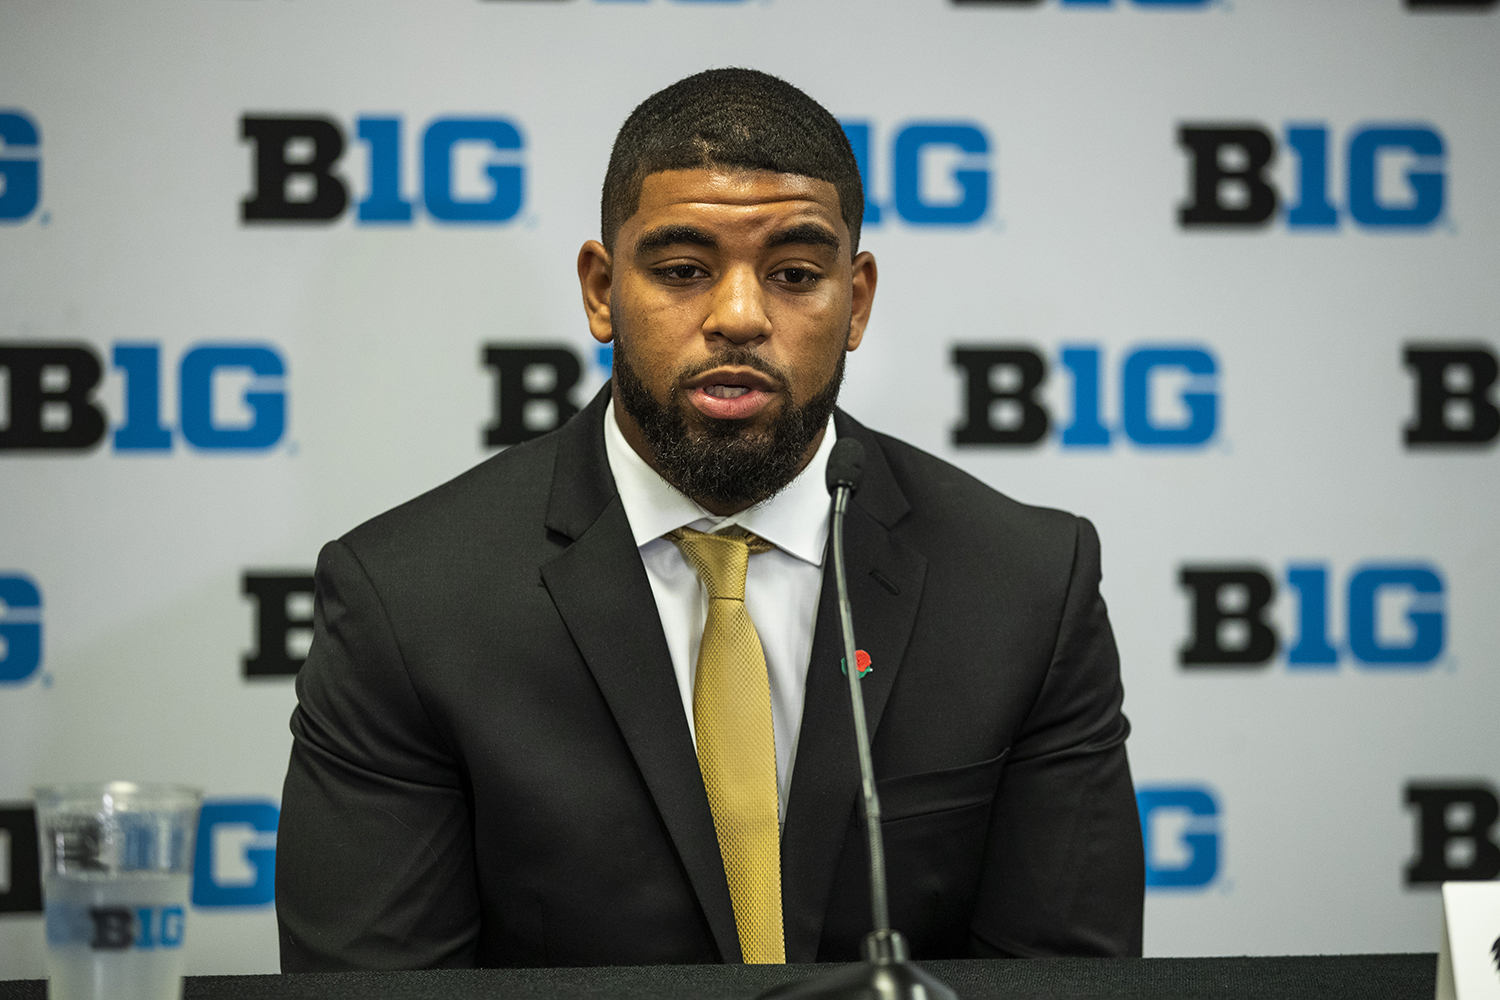 Iowa running back Toren Young speaks to the media during the second day of Big Ten Football Media Days in Chicago, Ill., on Friday, July 19, 2019.